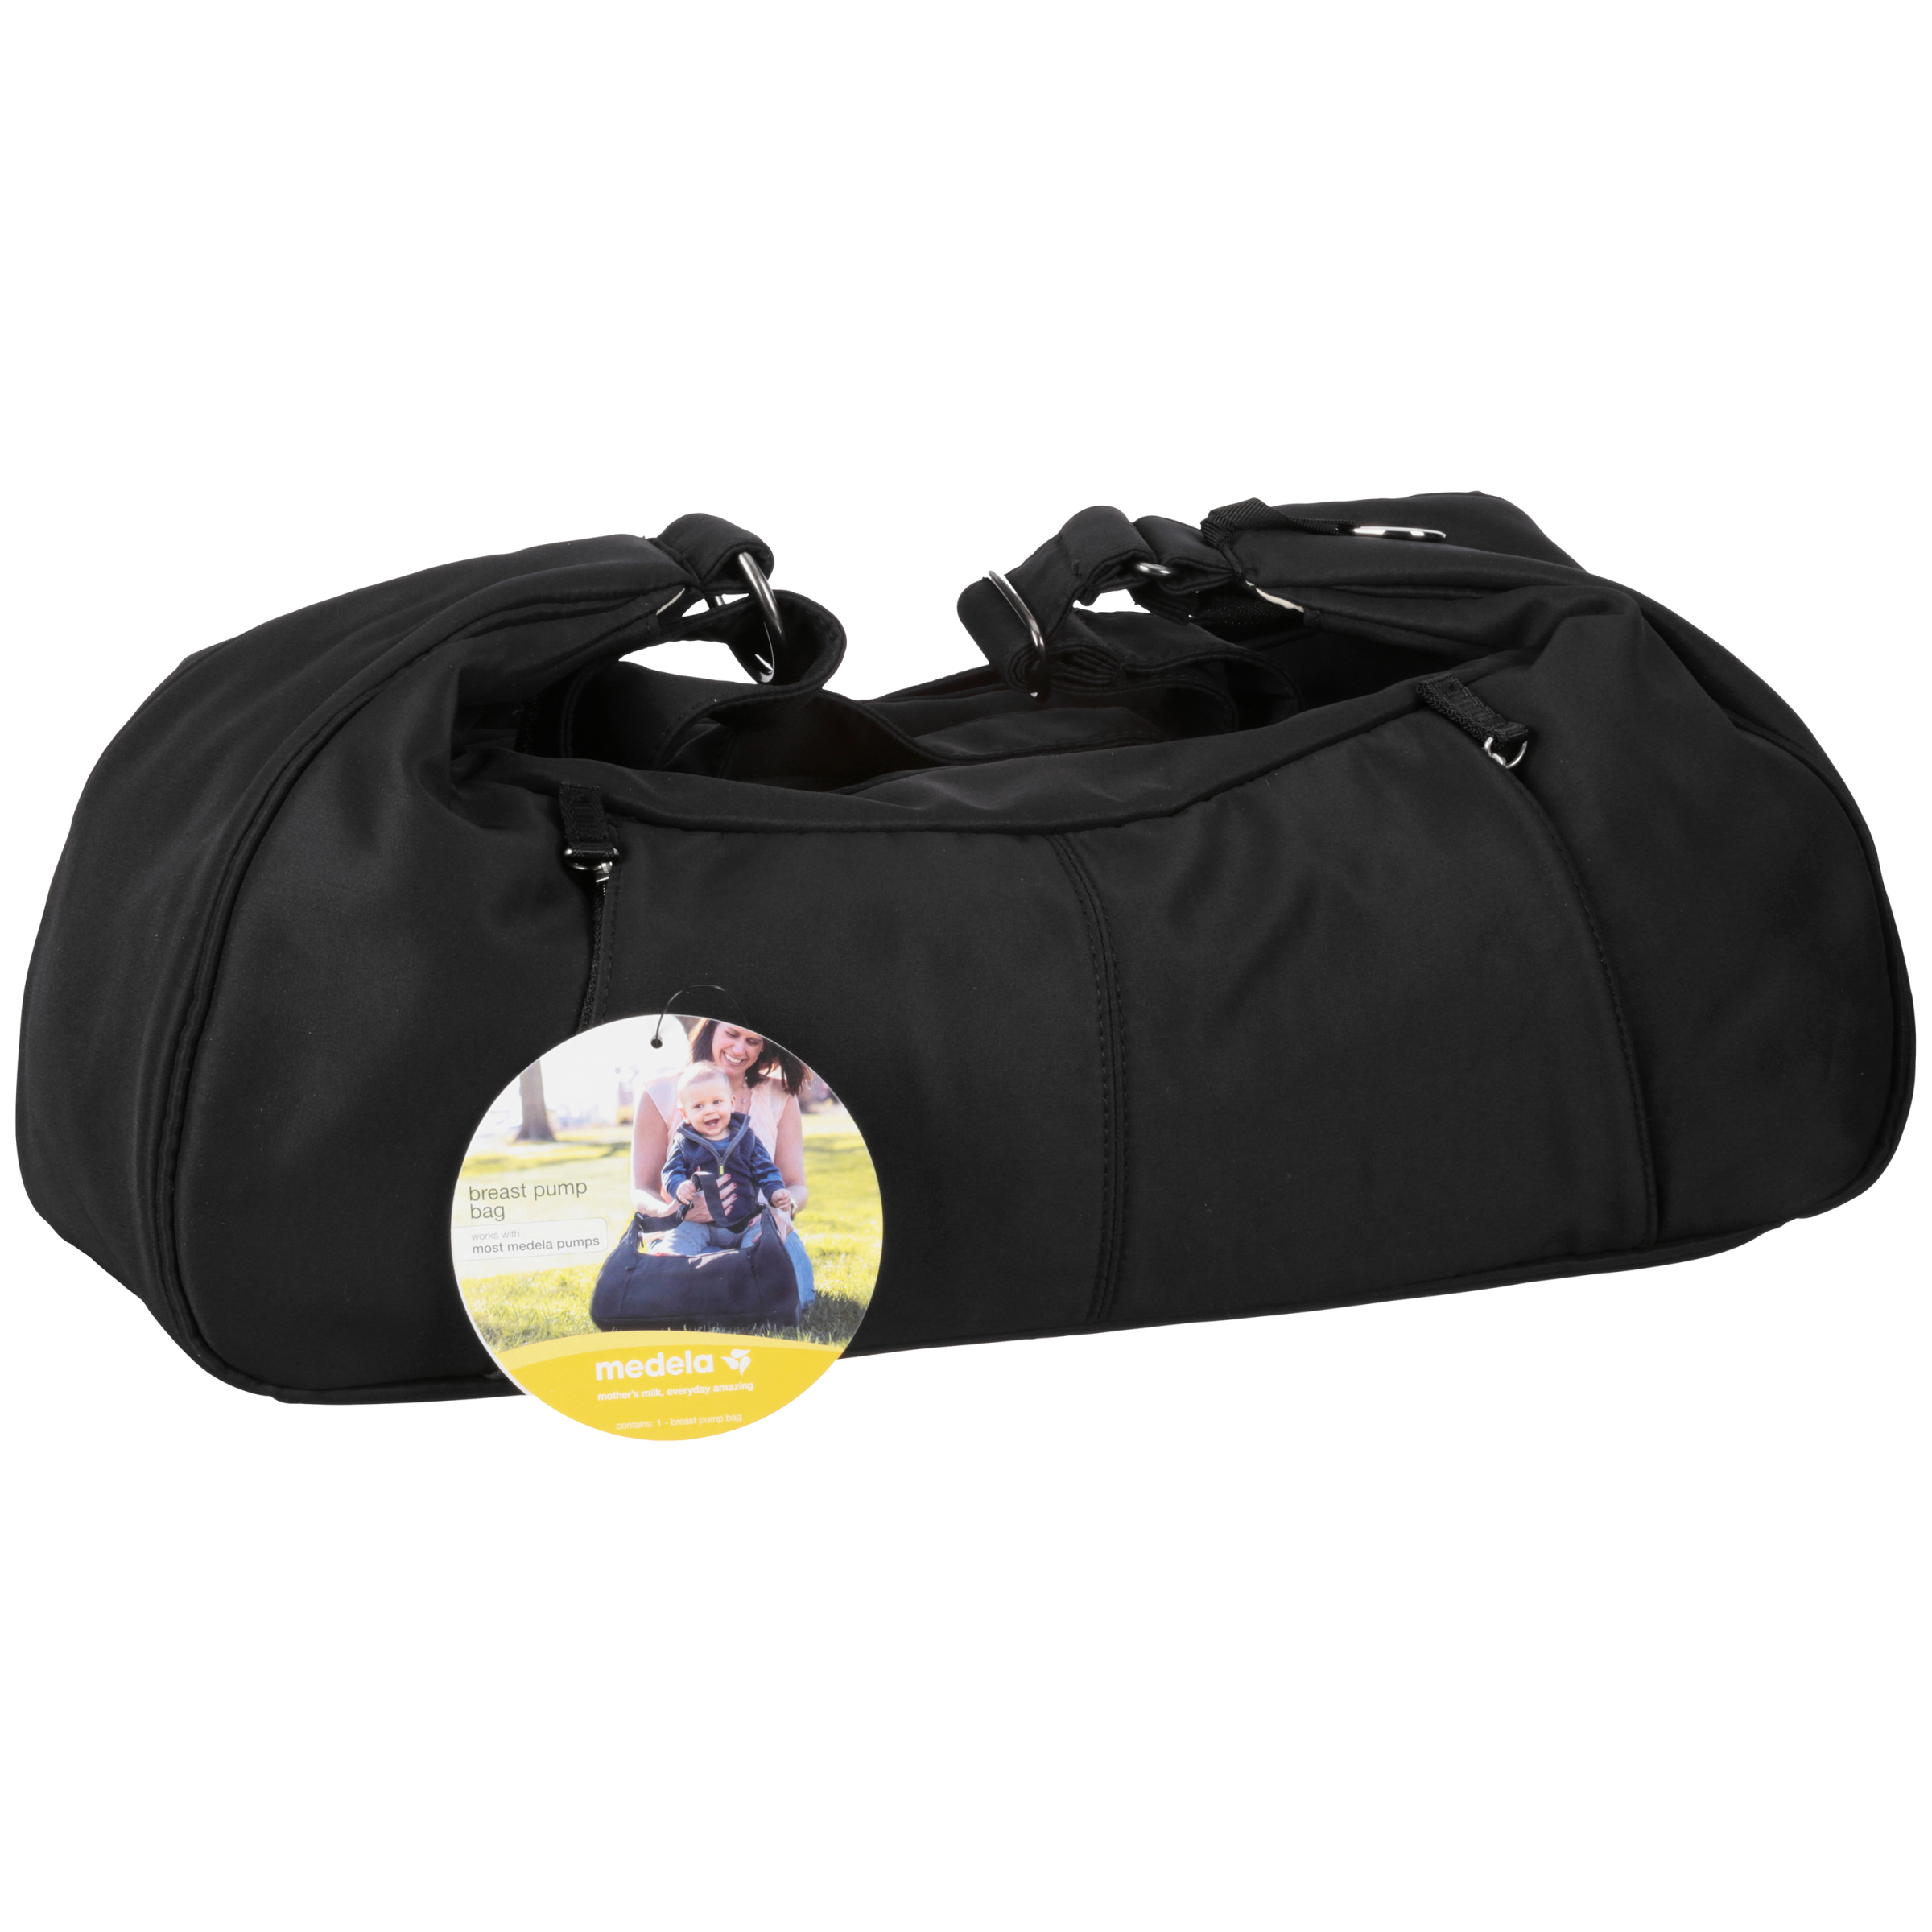 Medela Breast Pump Carry Bag Walmart Com Walmart Com